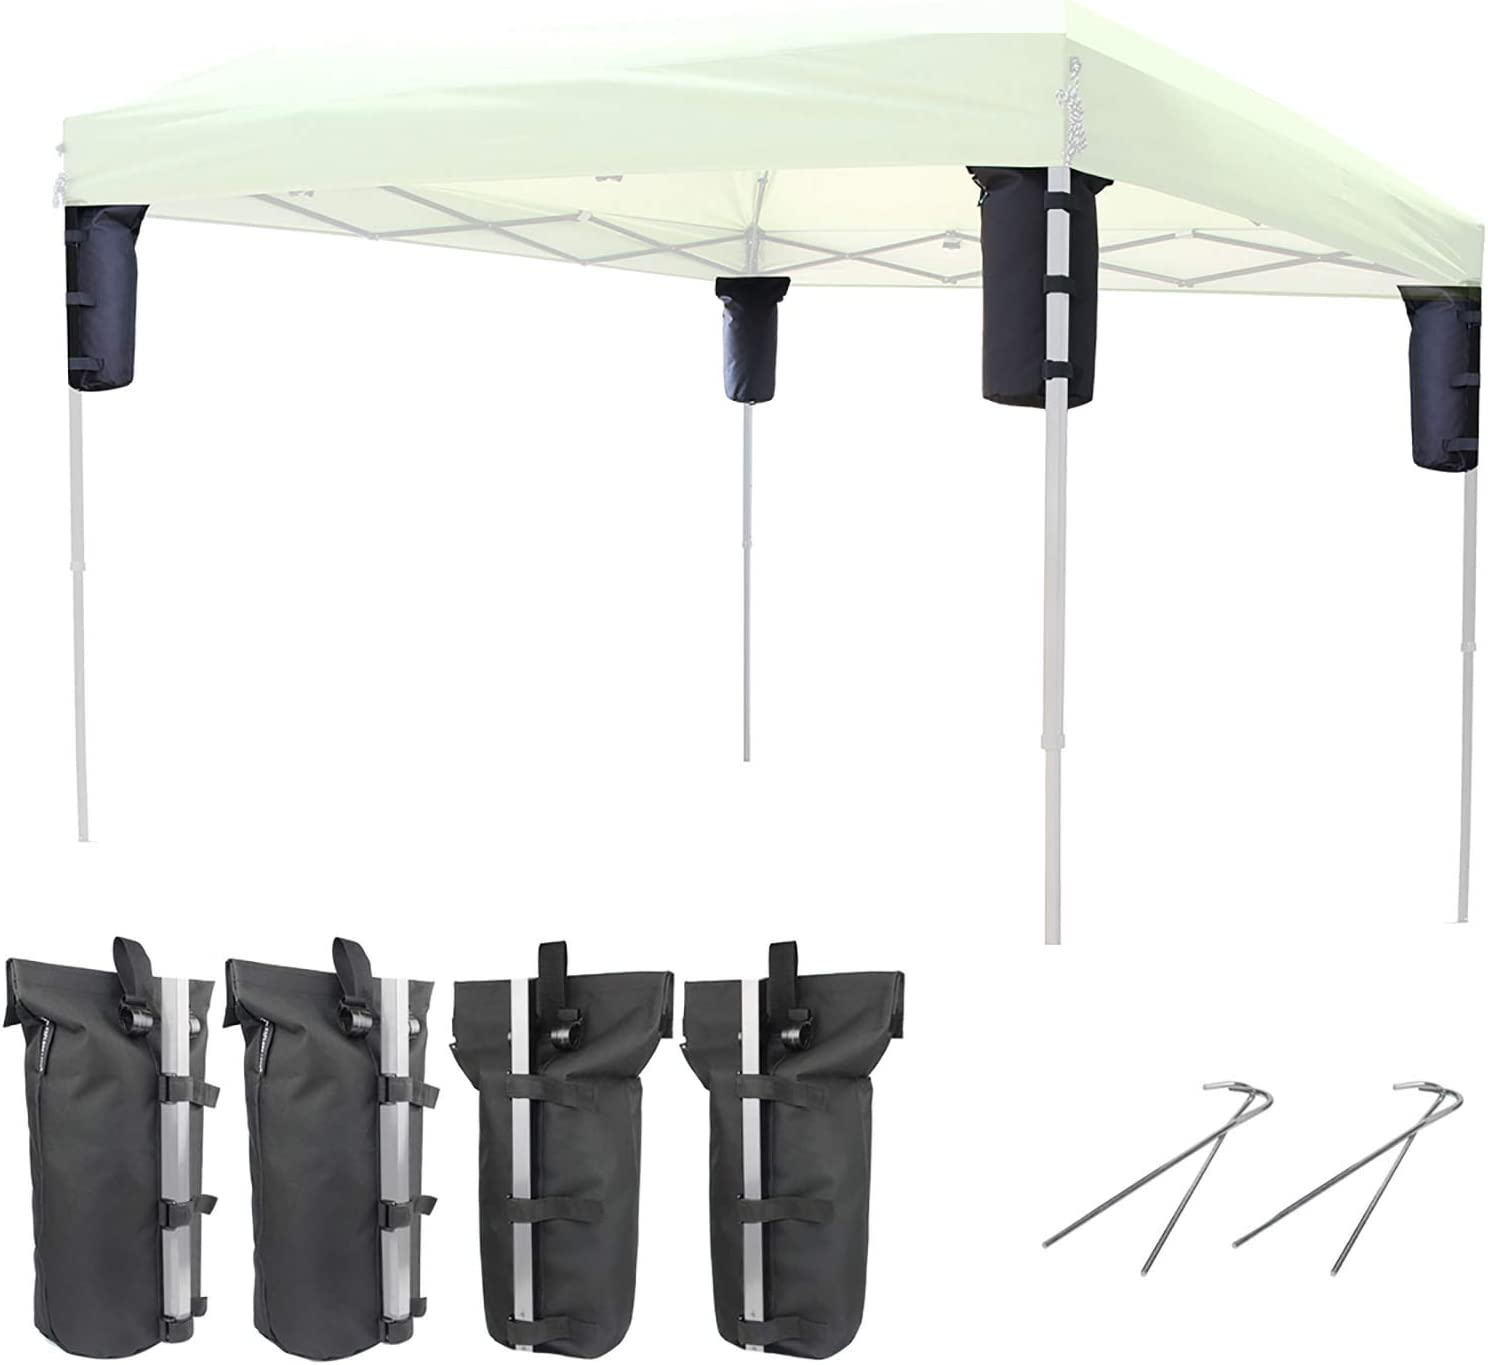 Explore Land 2-in-1 Weight Bag for Portable Pop-up Canopy Tent Gazebo Outdoor Up to 30 lb, Without Sand (4, Black)